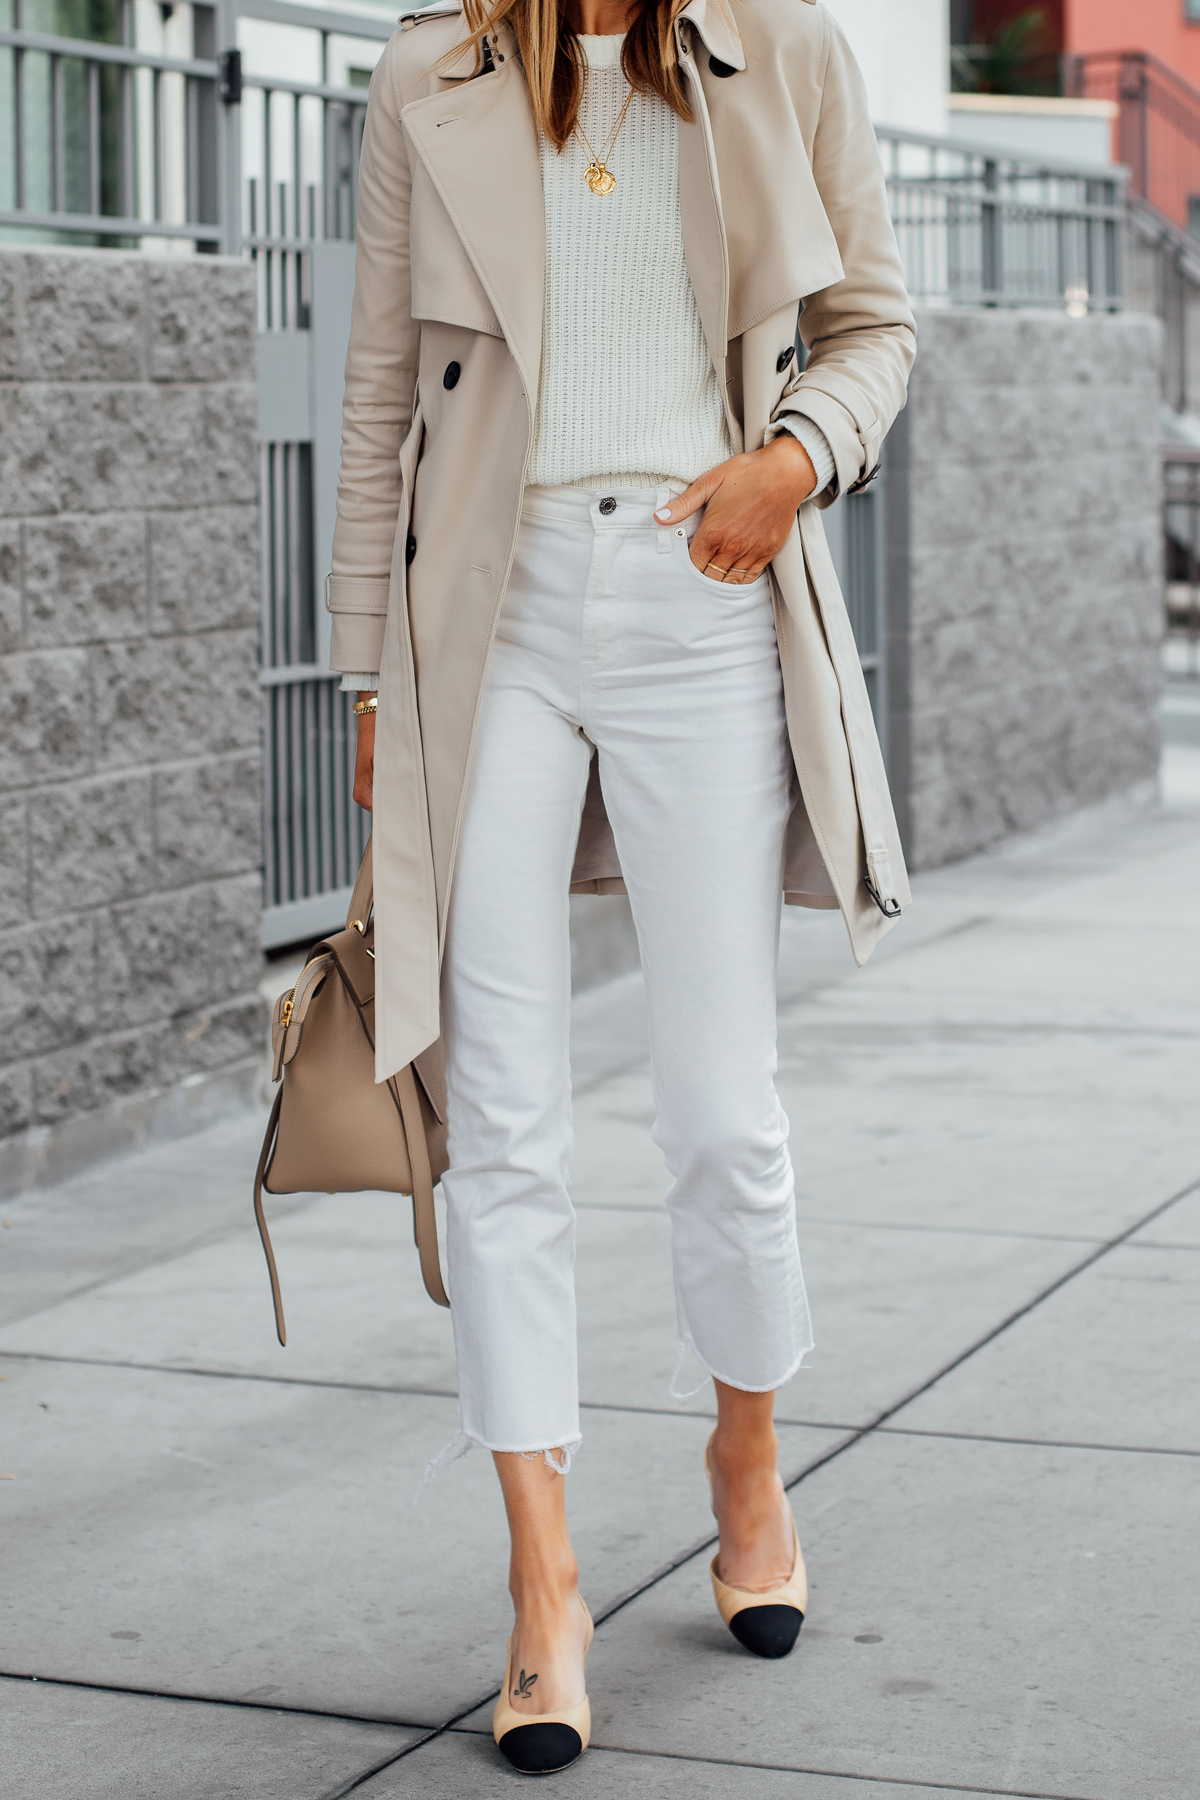 Woman Wearing Club Monaco Trench Coat White Sweater Everlane White Cropped Jeans Chanel Slingback Shoes Fashion Jackson San Diego Fashion Blogger Street Style